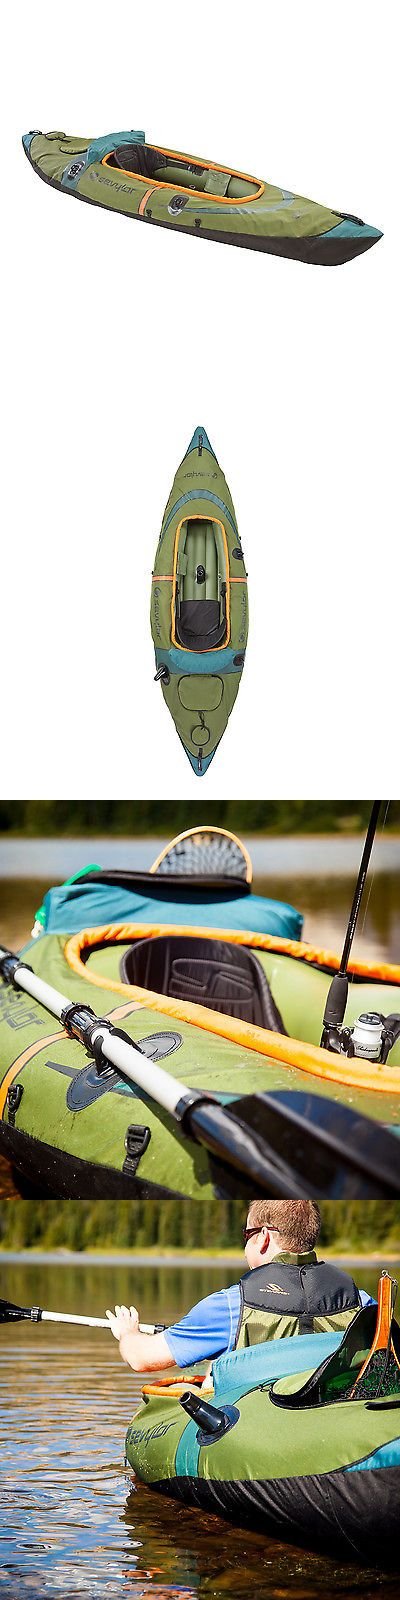 Kayaks 36122: Coleman Sevylor 24-Gauge K5 Hot Fish Inflatable Single-Seater Kayak | 2000014124 -> BUY IT NOW ONLY: $267.99 on eBay!